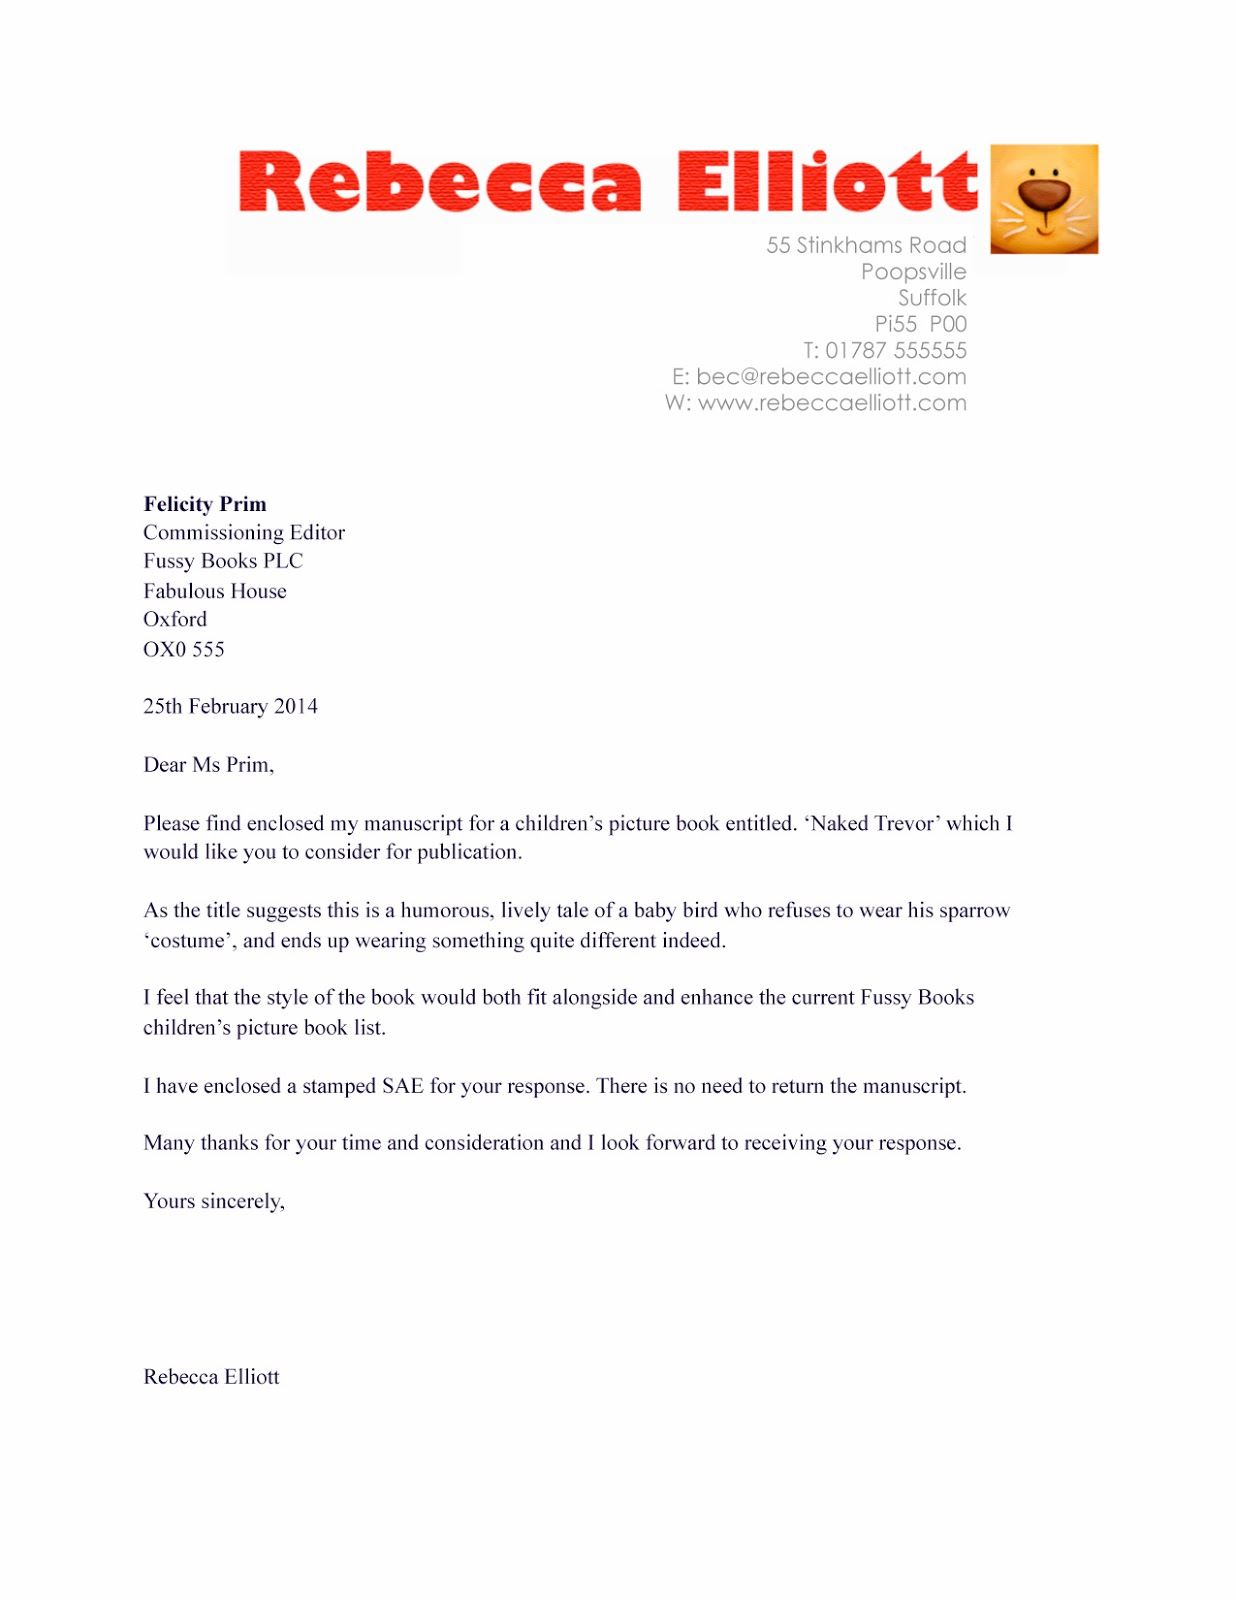 Book Editor Cover Letter - Resume Templates